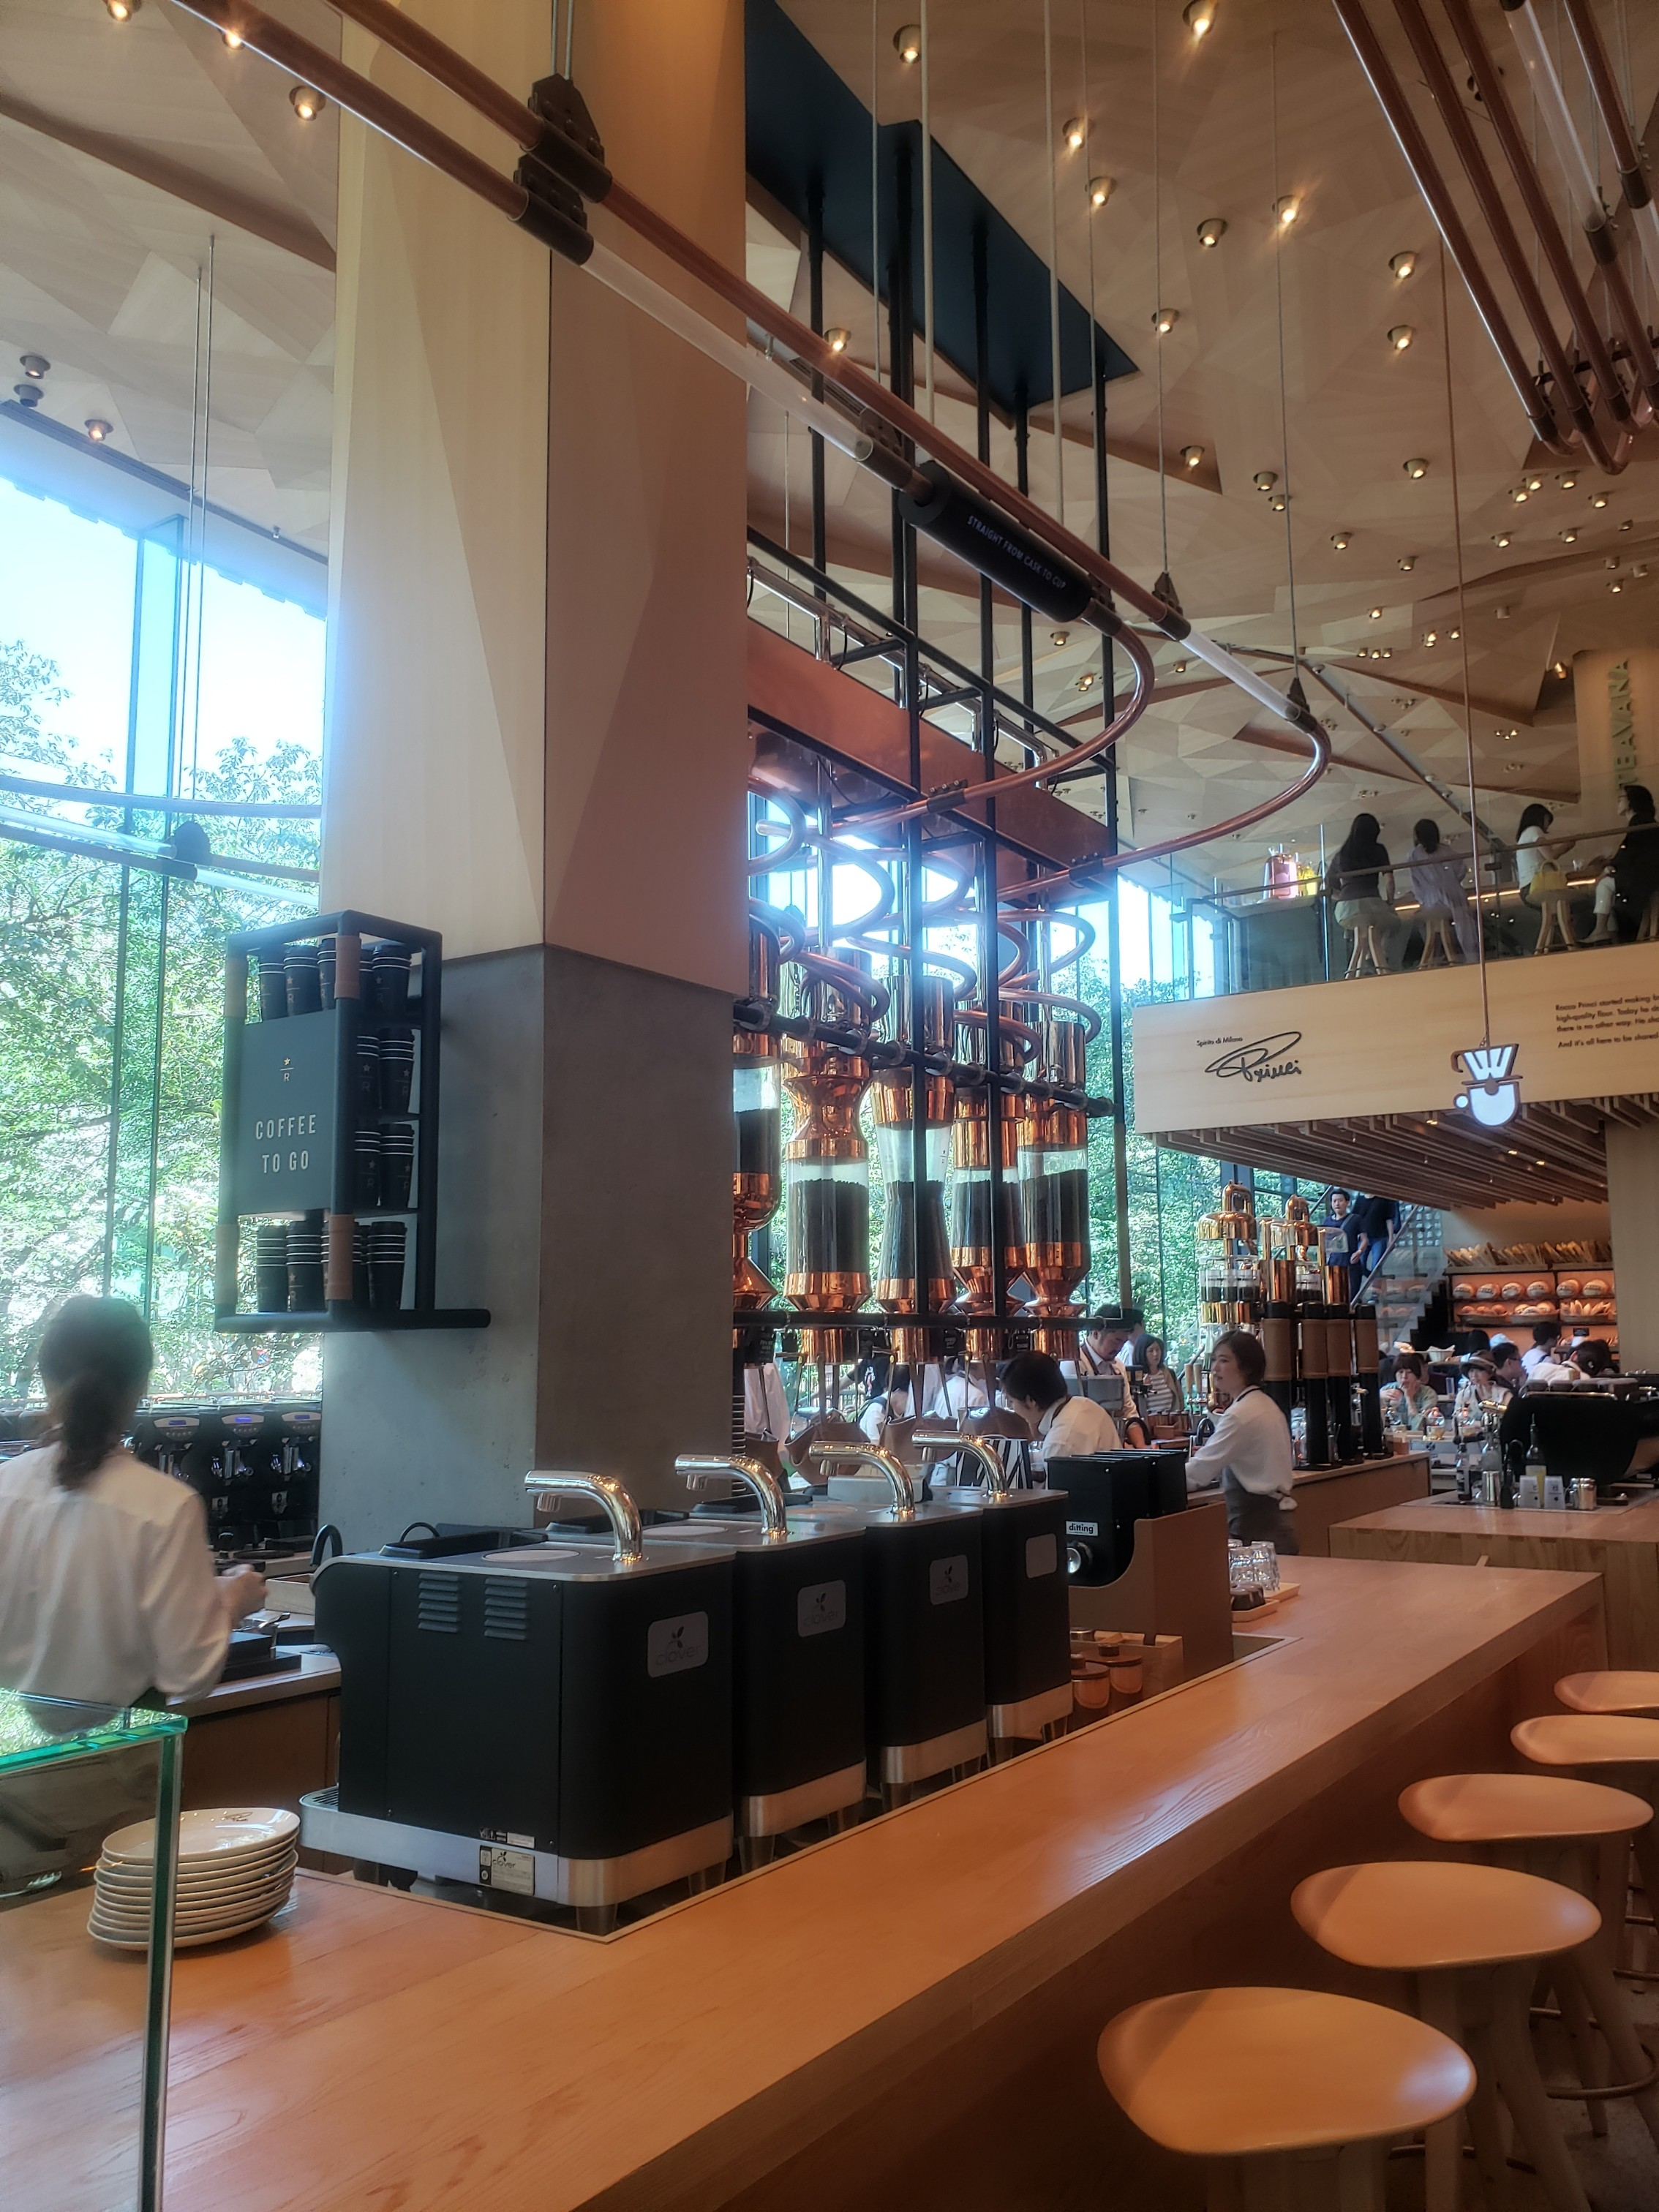 [STARBUCK RESERVE ROASTERY TOKYO]は、まるでテーマパーク☆第1段_4